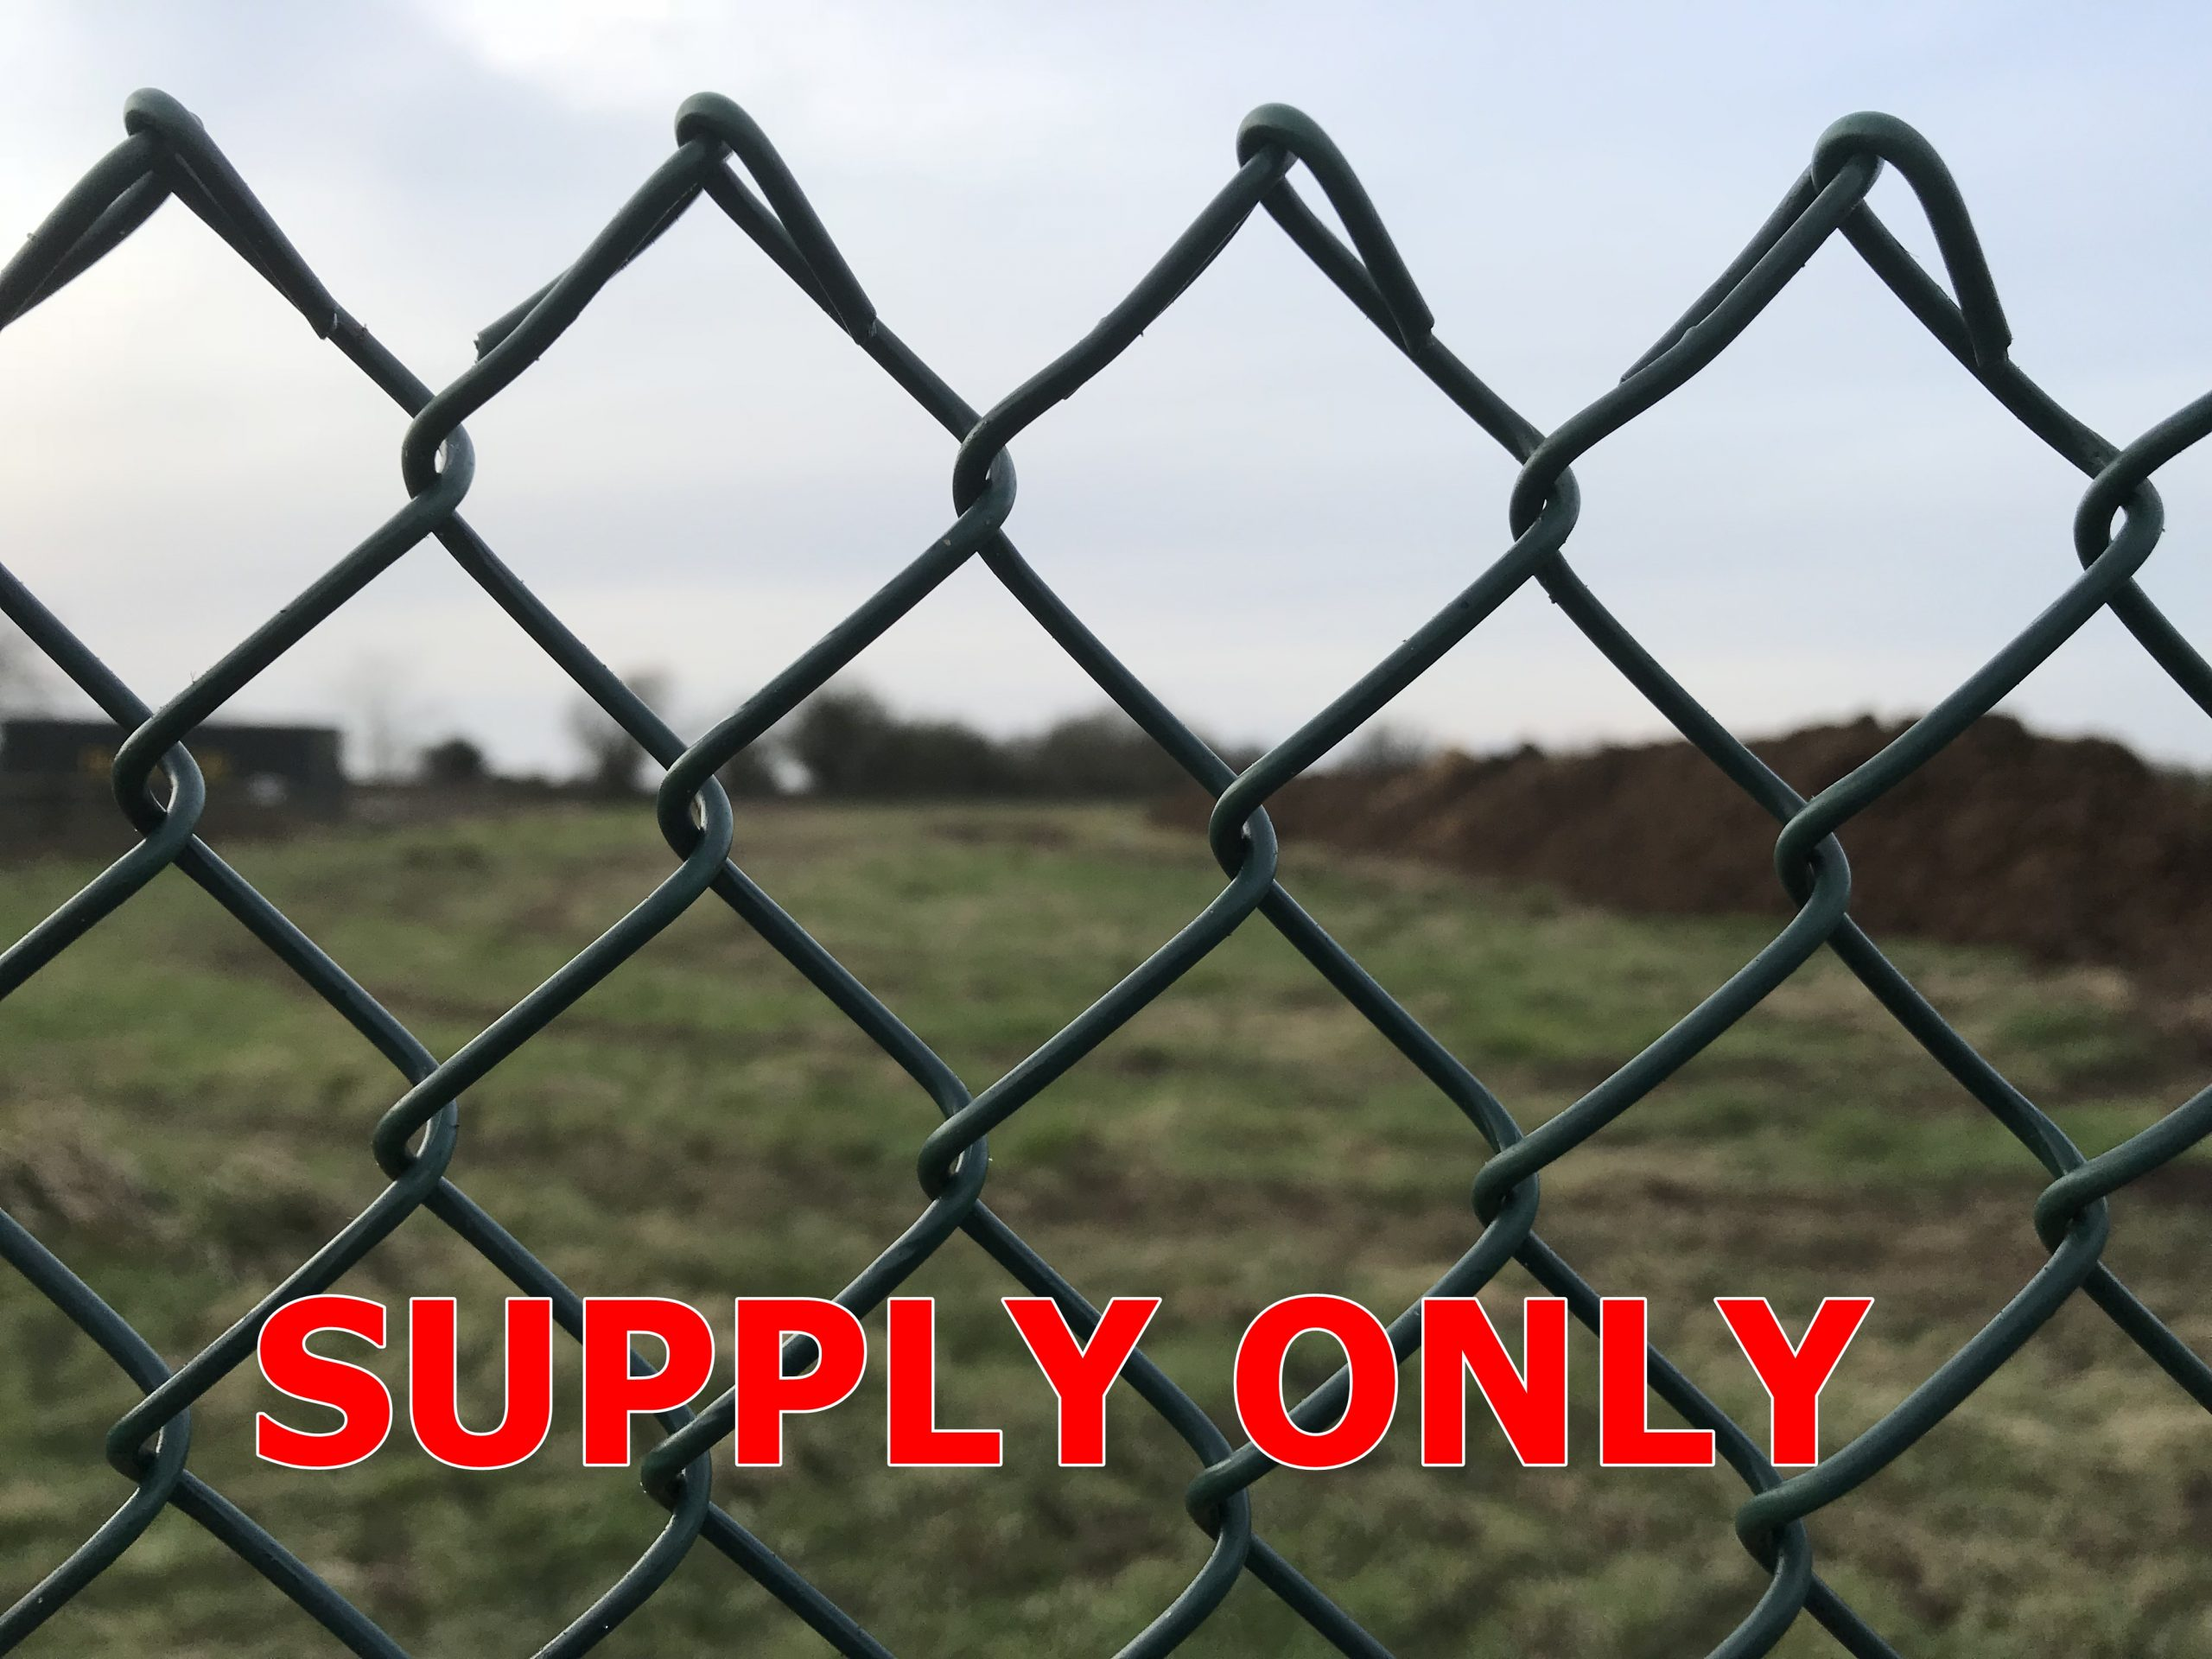 SUPPLY ONLY ..